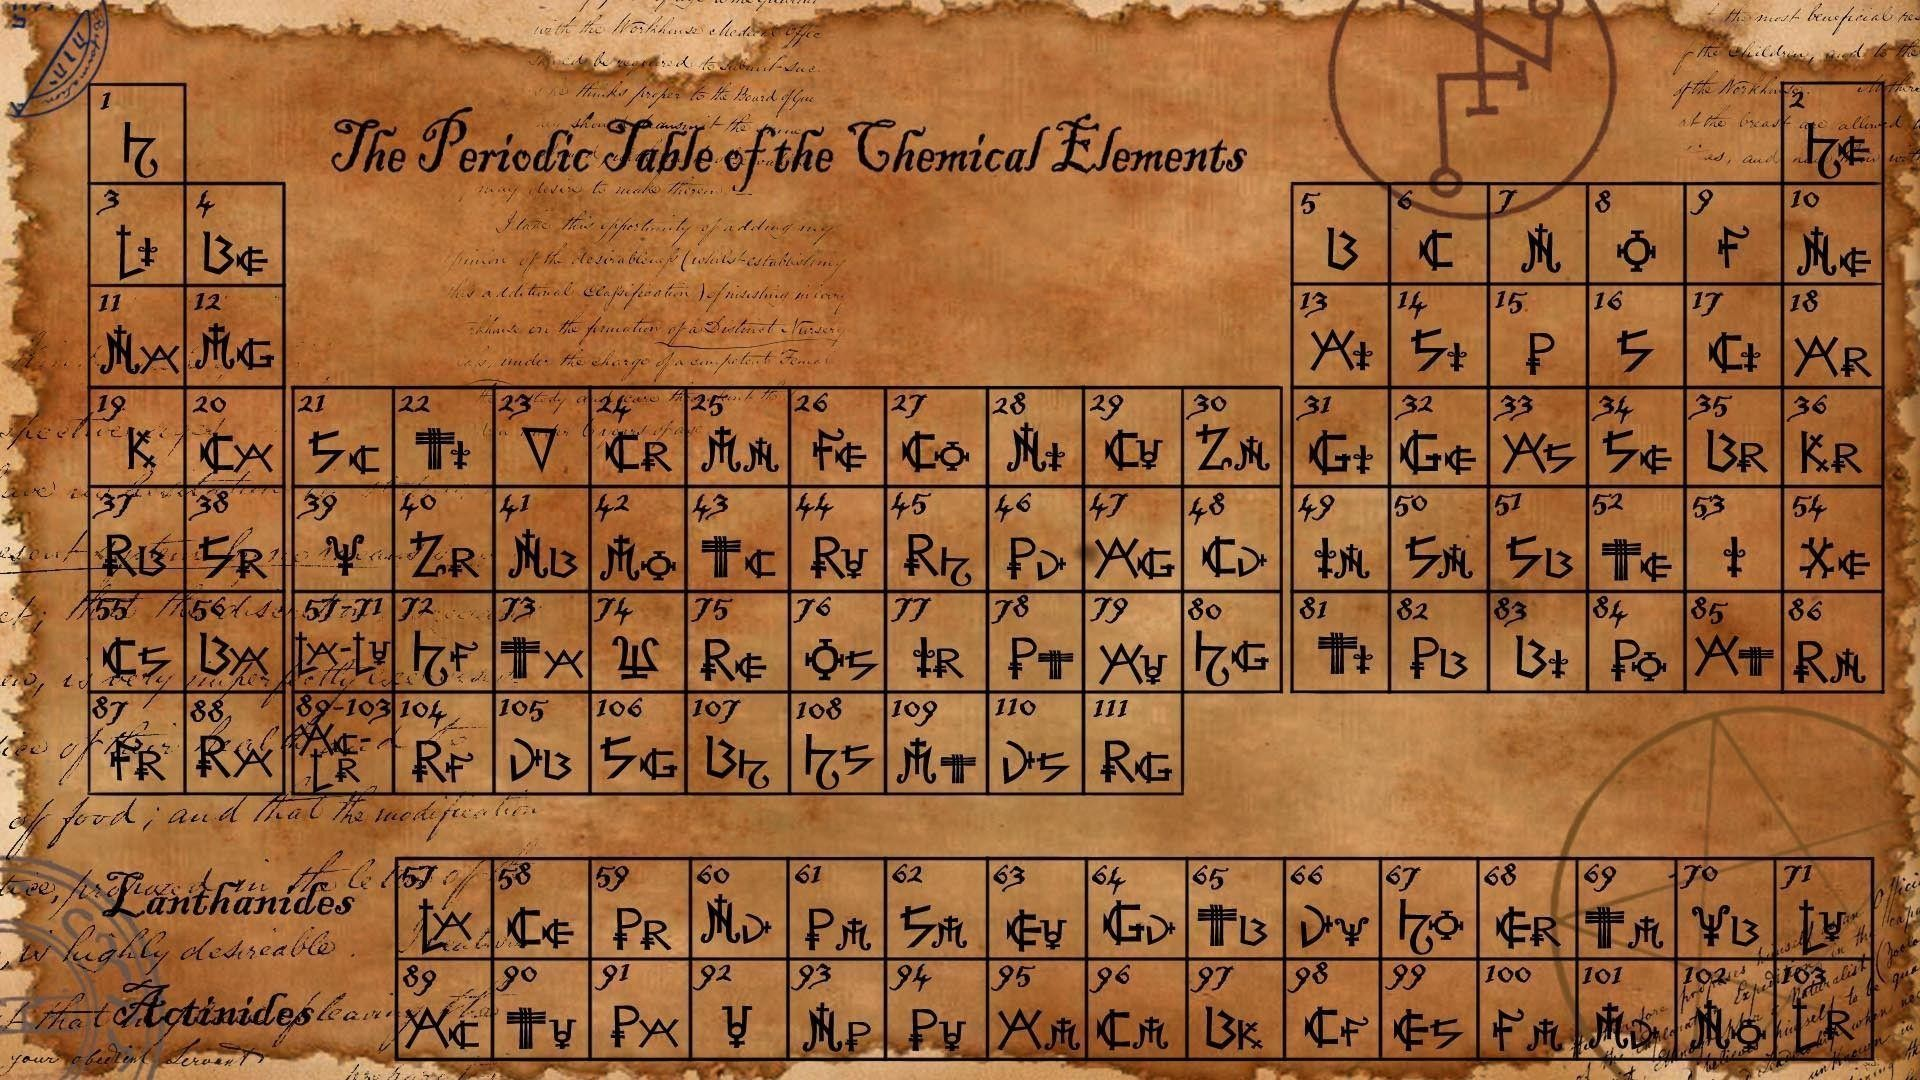 Periodic table image in hd gallery periodic table images periodic table image in hd gallery periodic table images hd periodic table of elements choice image gamestrikefo Choice Image